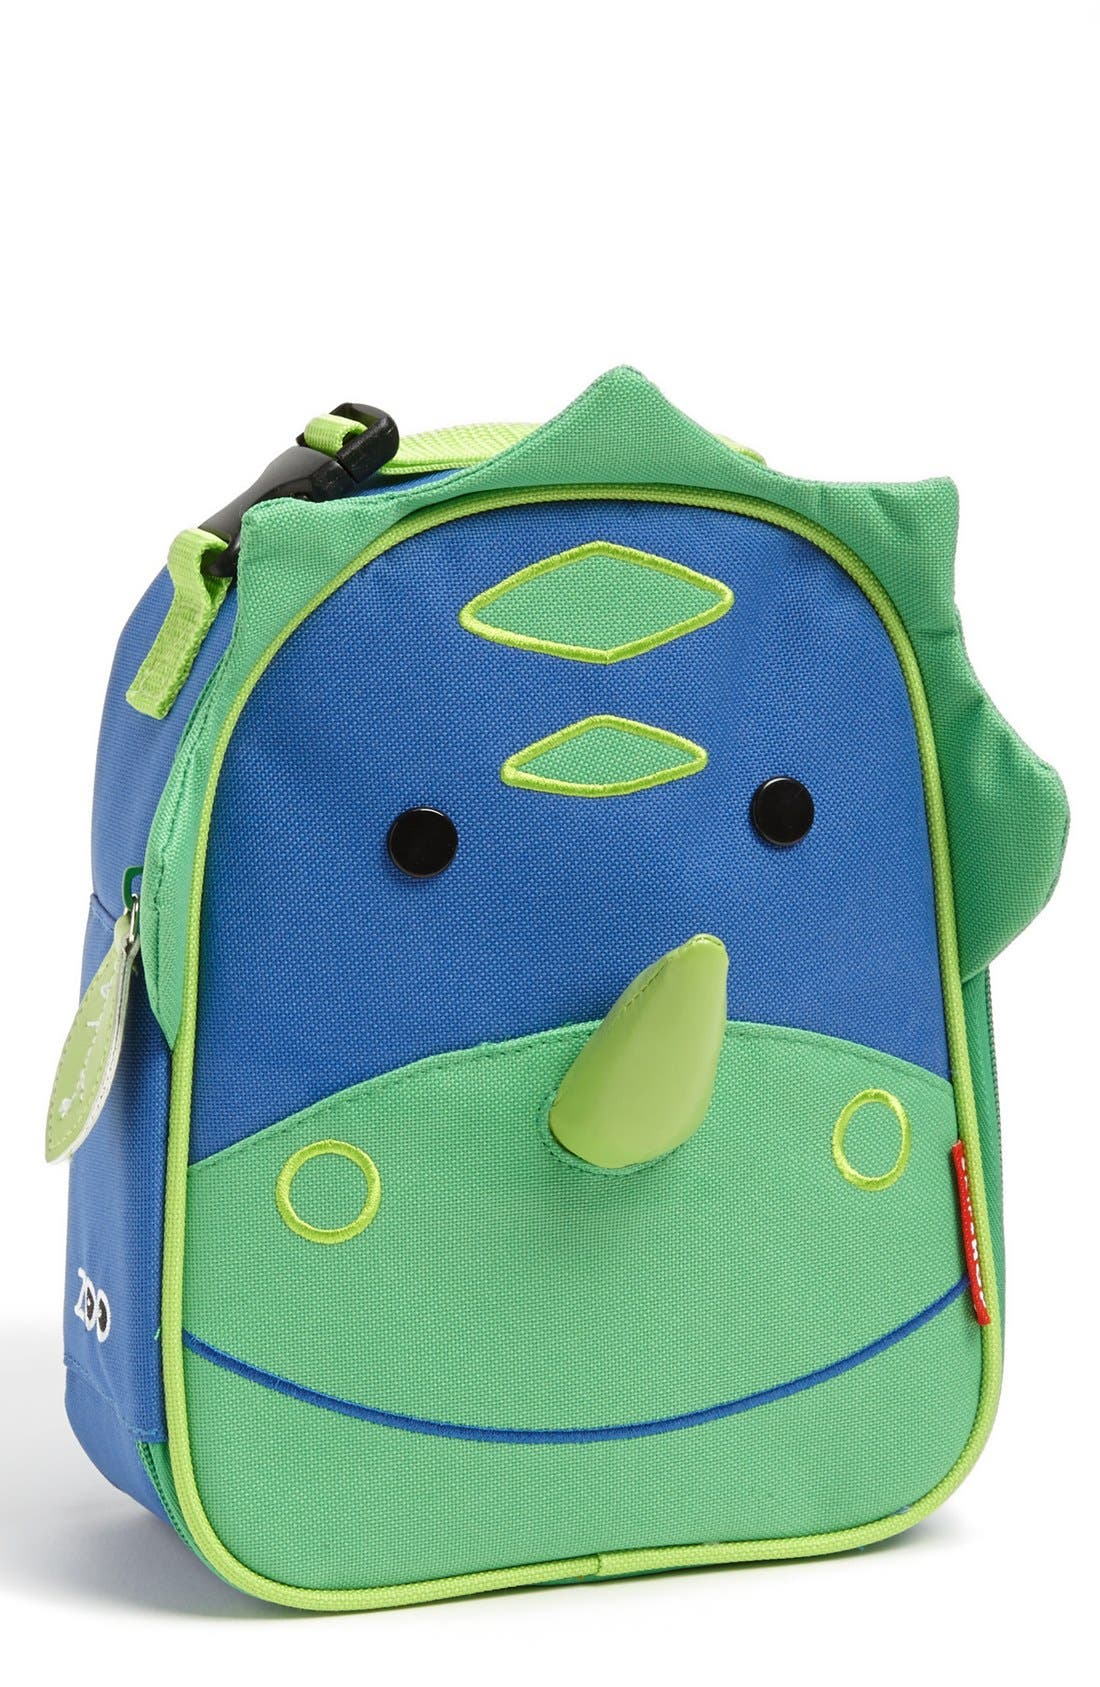 Skip Hop Zoo Lunch Bag